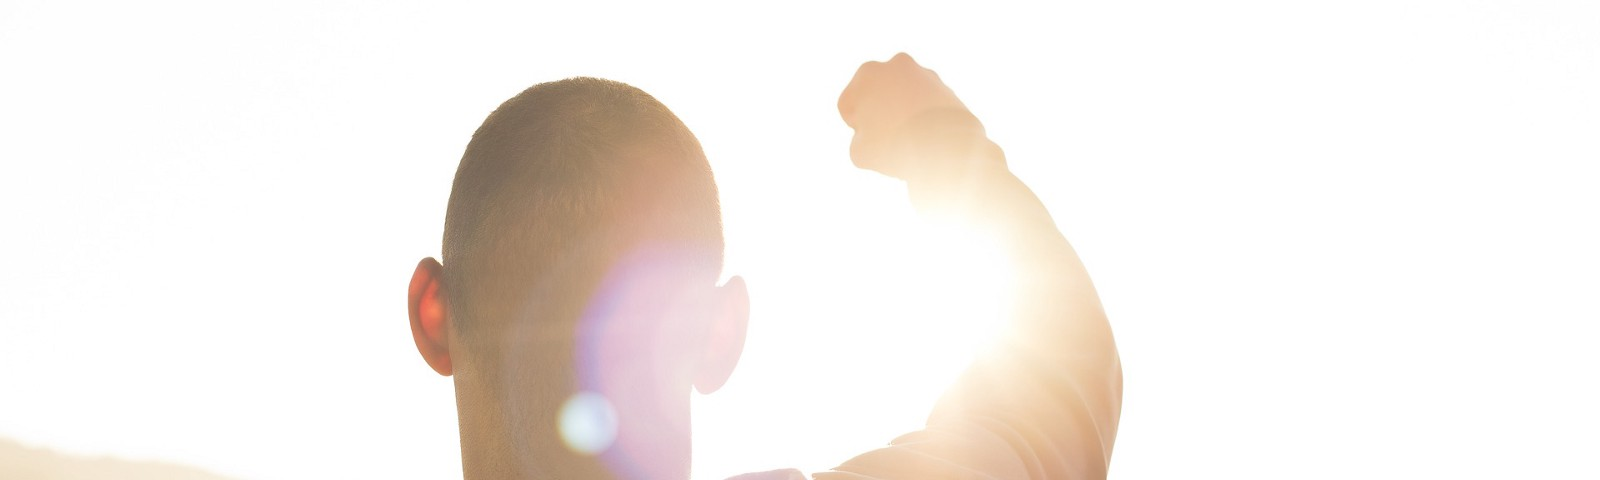 a man with victorious fist upraised with the sun shining